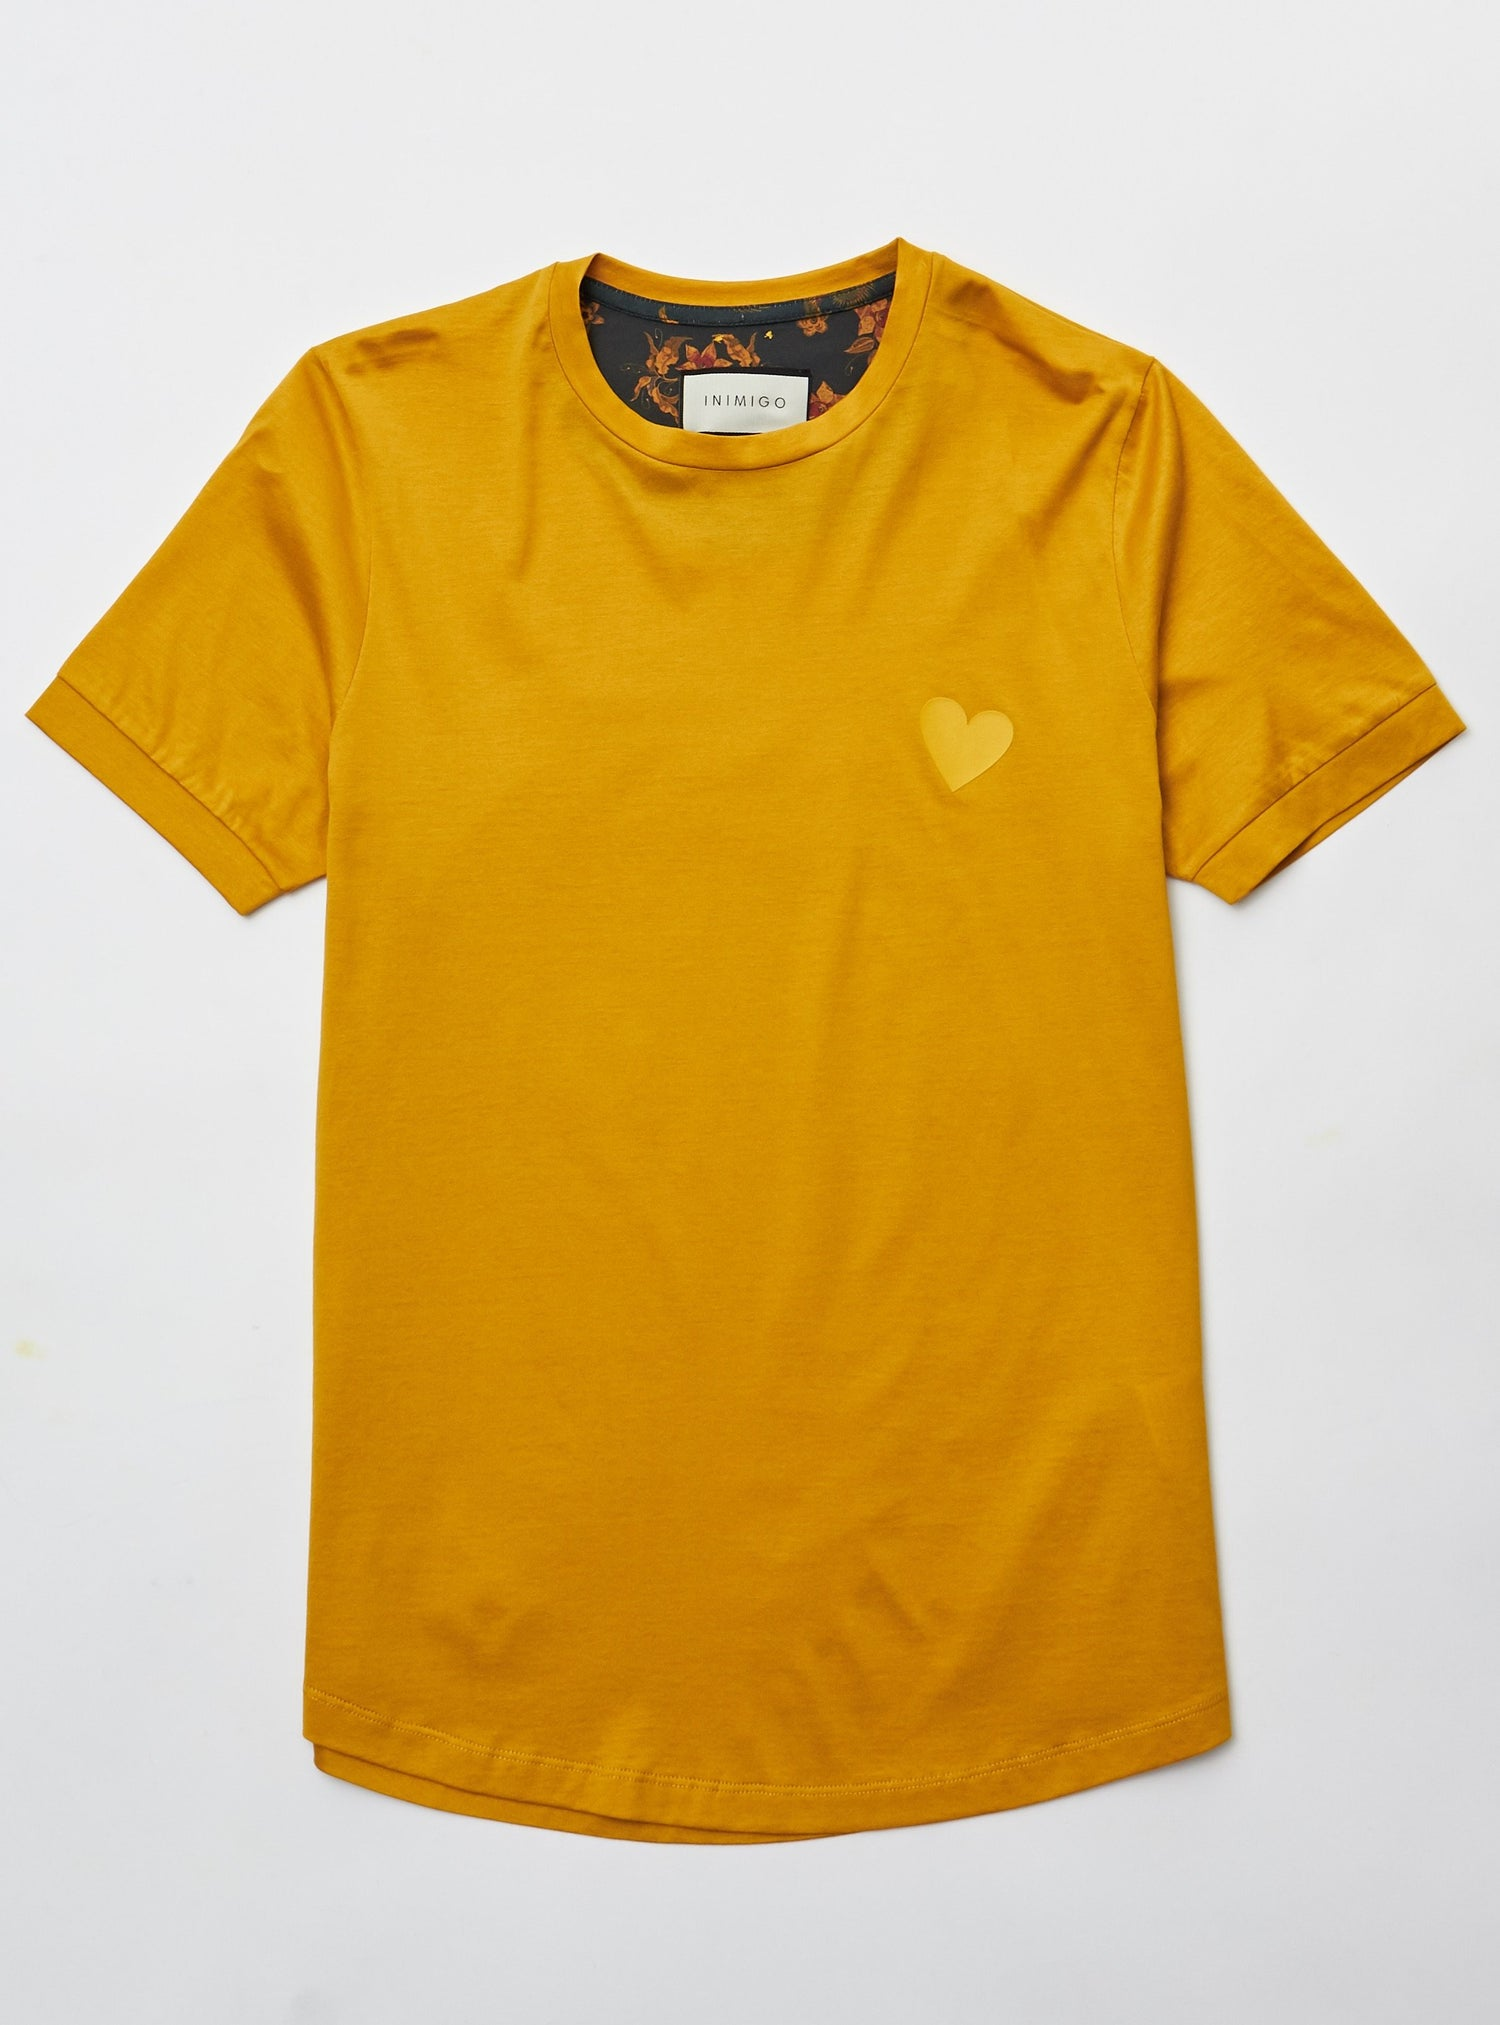 Inimigo T-Shirt - Classic - Gold - ITS4102